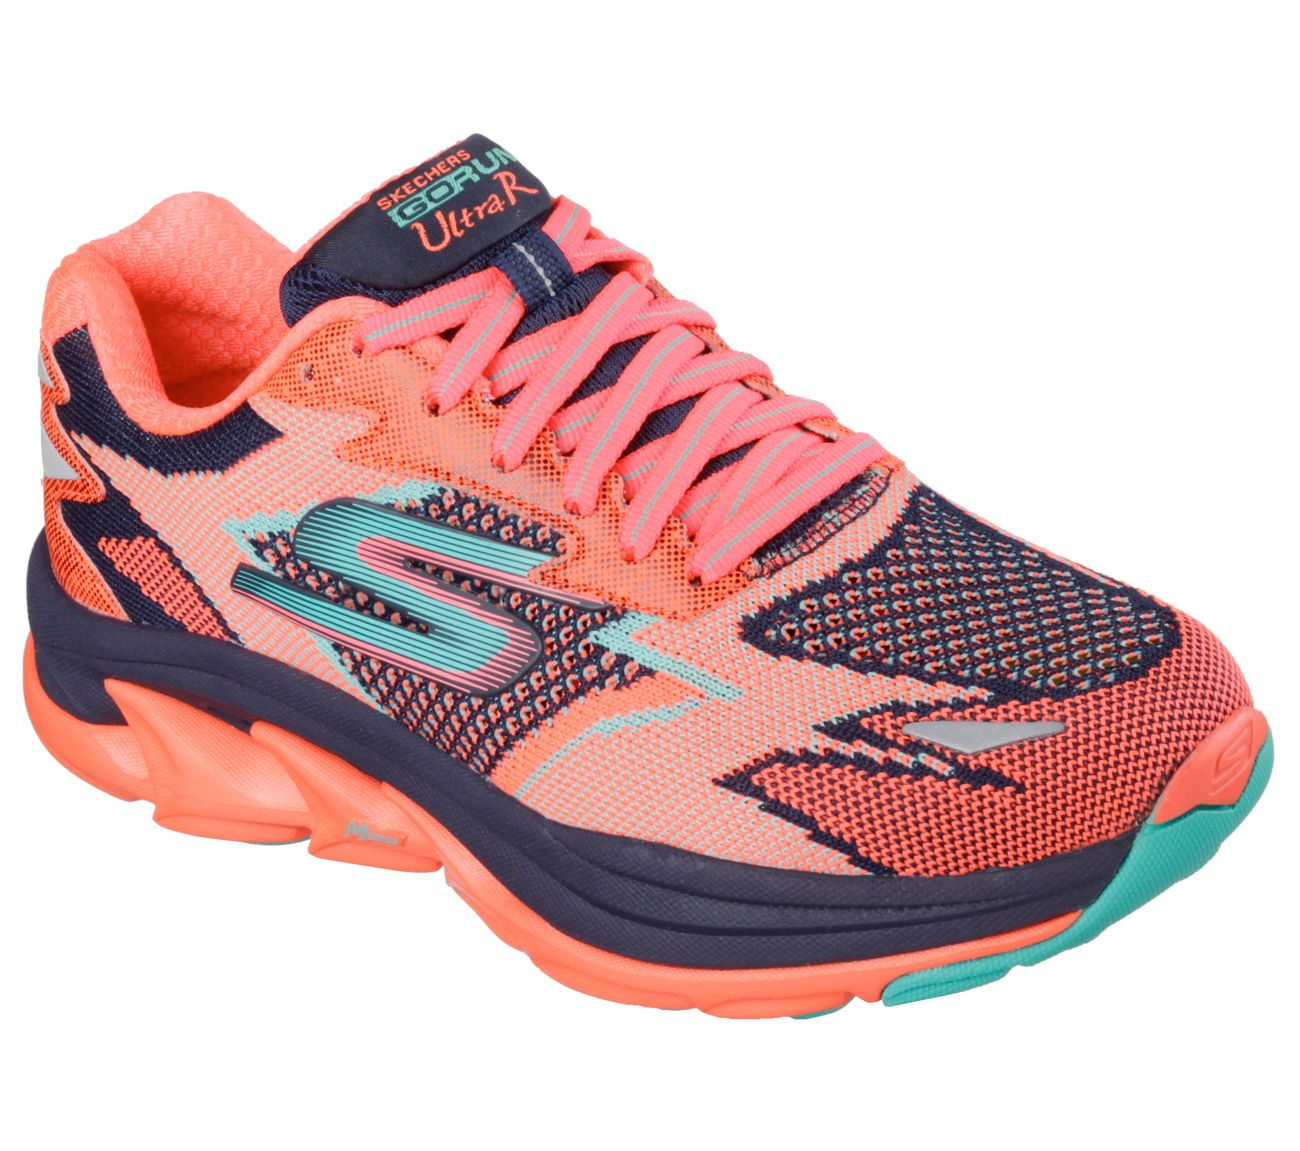 884376de74e We ve taken our ultimate neutral cushioning shoe and made it super durable  for the road. Skechers GOrun Ultra Road combines a dual-density Resalyte®  midsole ...